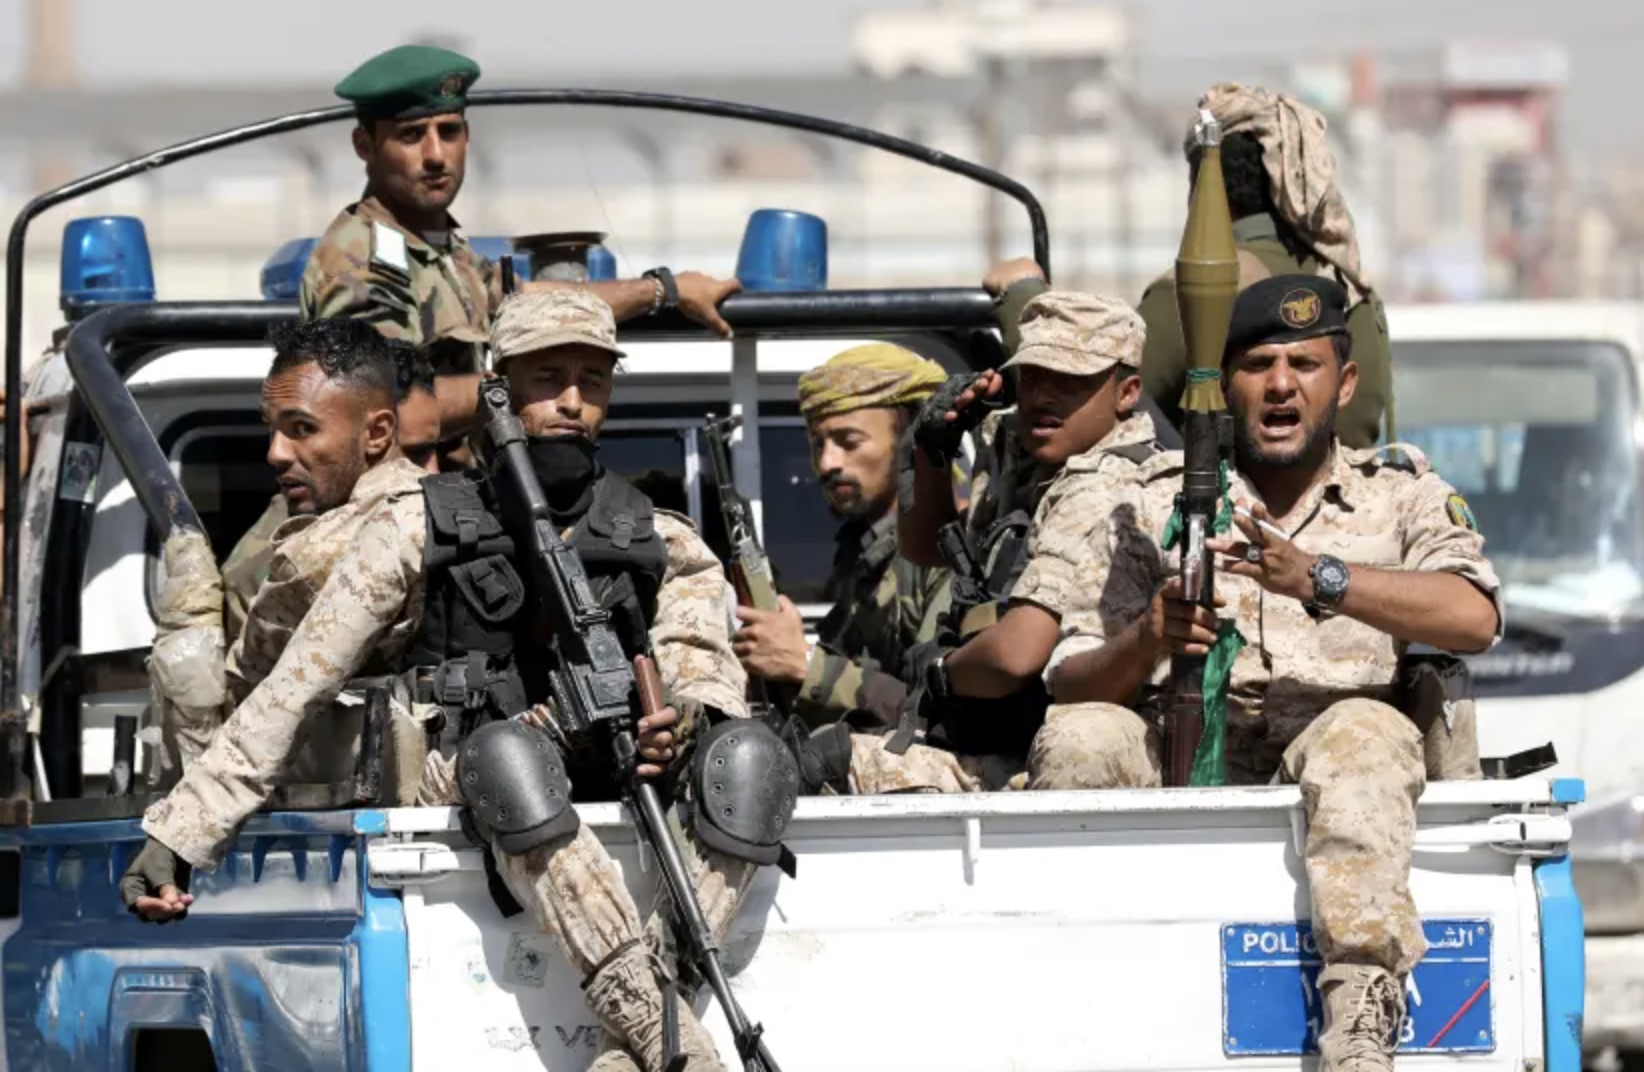 Houthi troops ride on the back of a police patrol truck after participating in a Houthi gathering in Sanaa, Yemen February 19, 2020. (photo credit: KHALED ABDULLAH/ REUTERS)